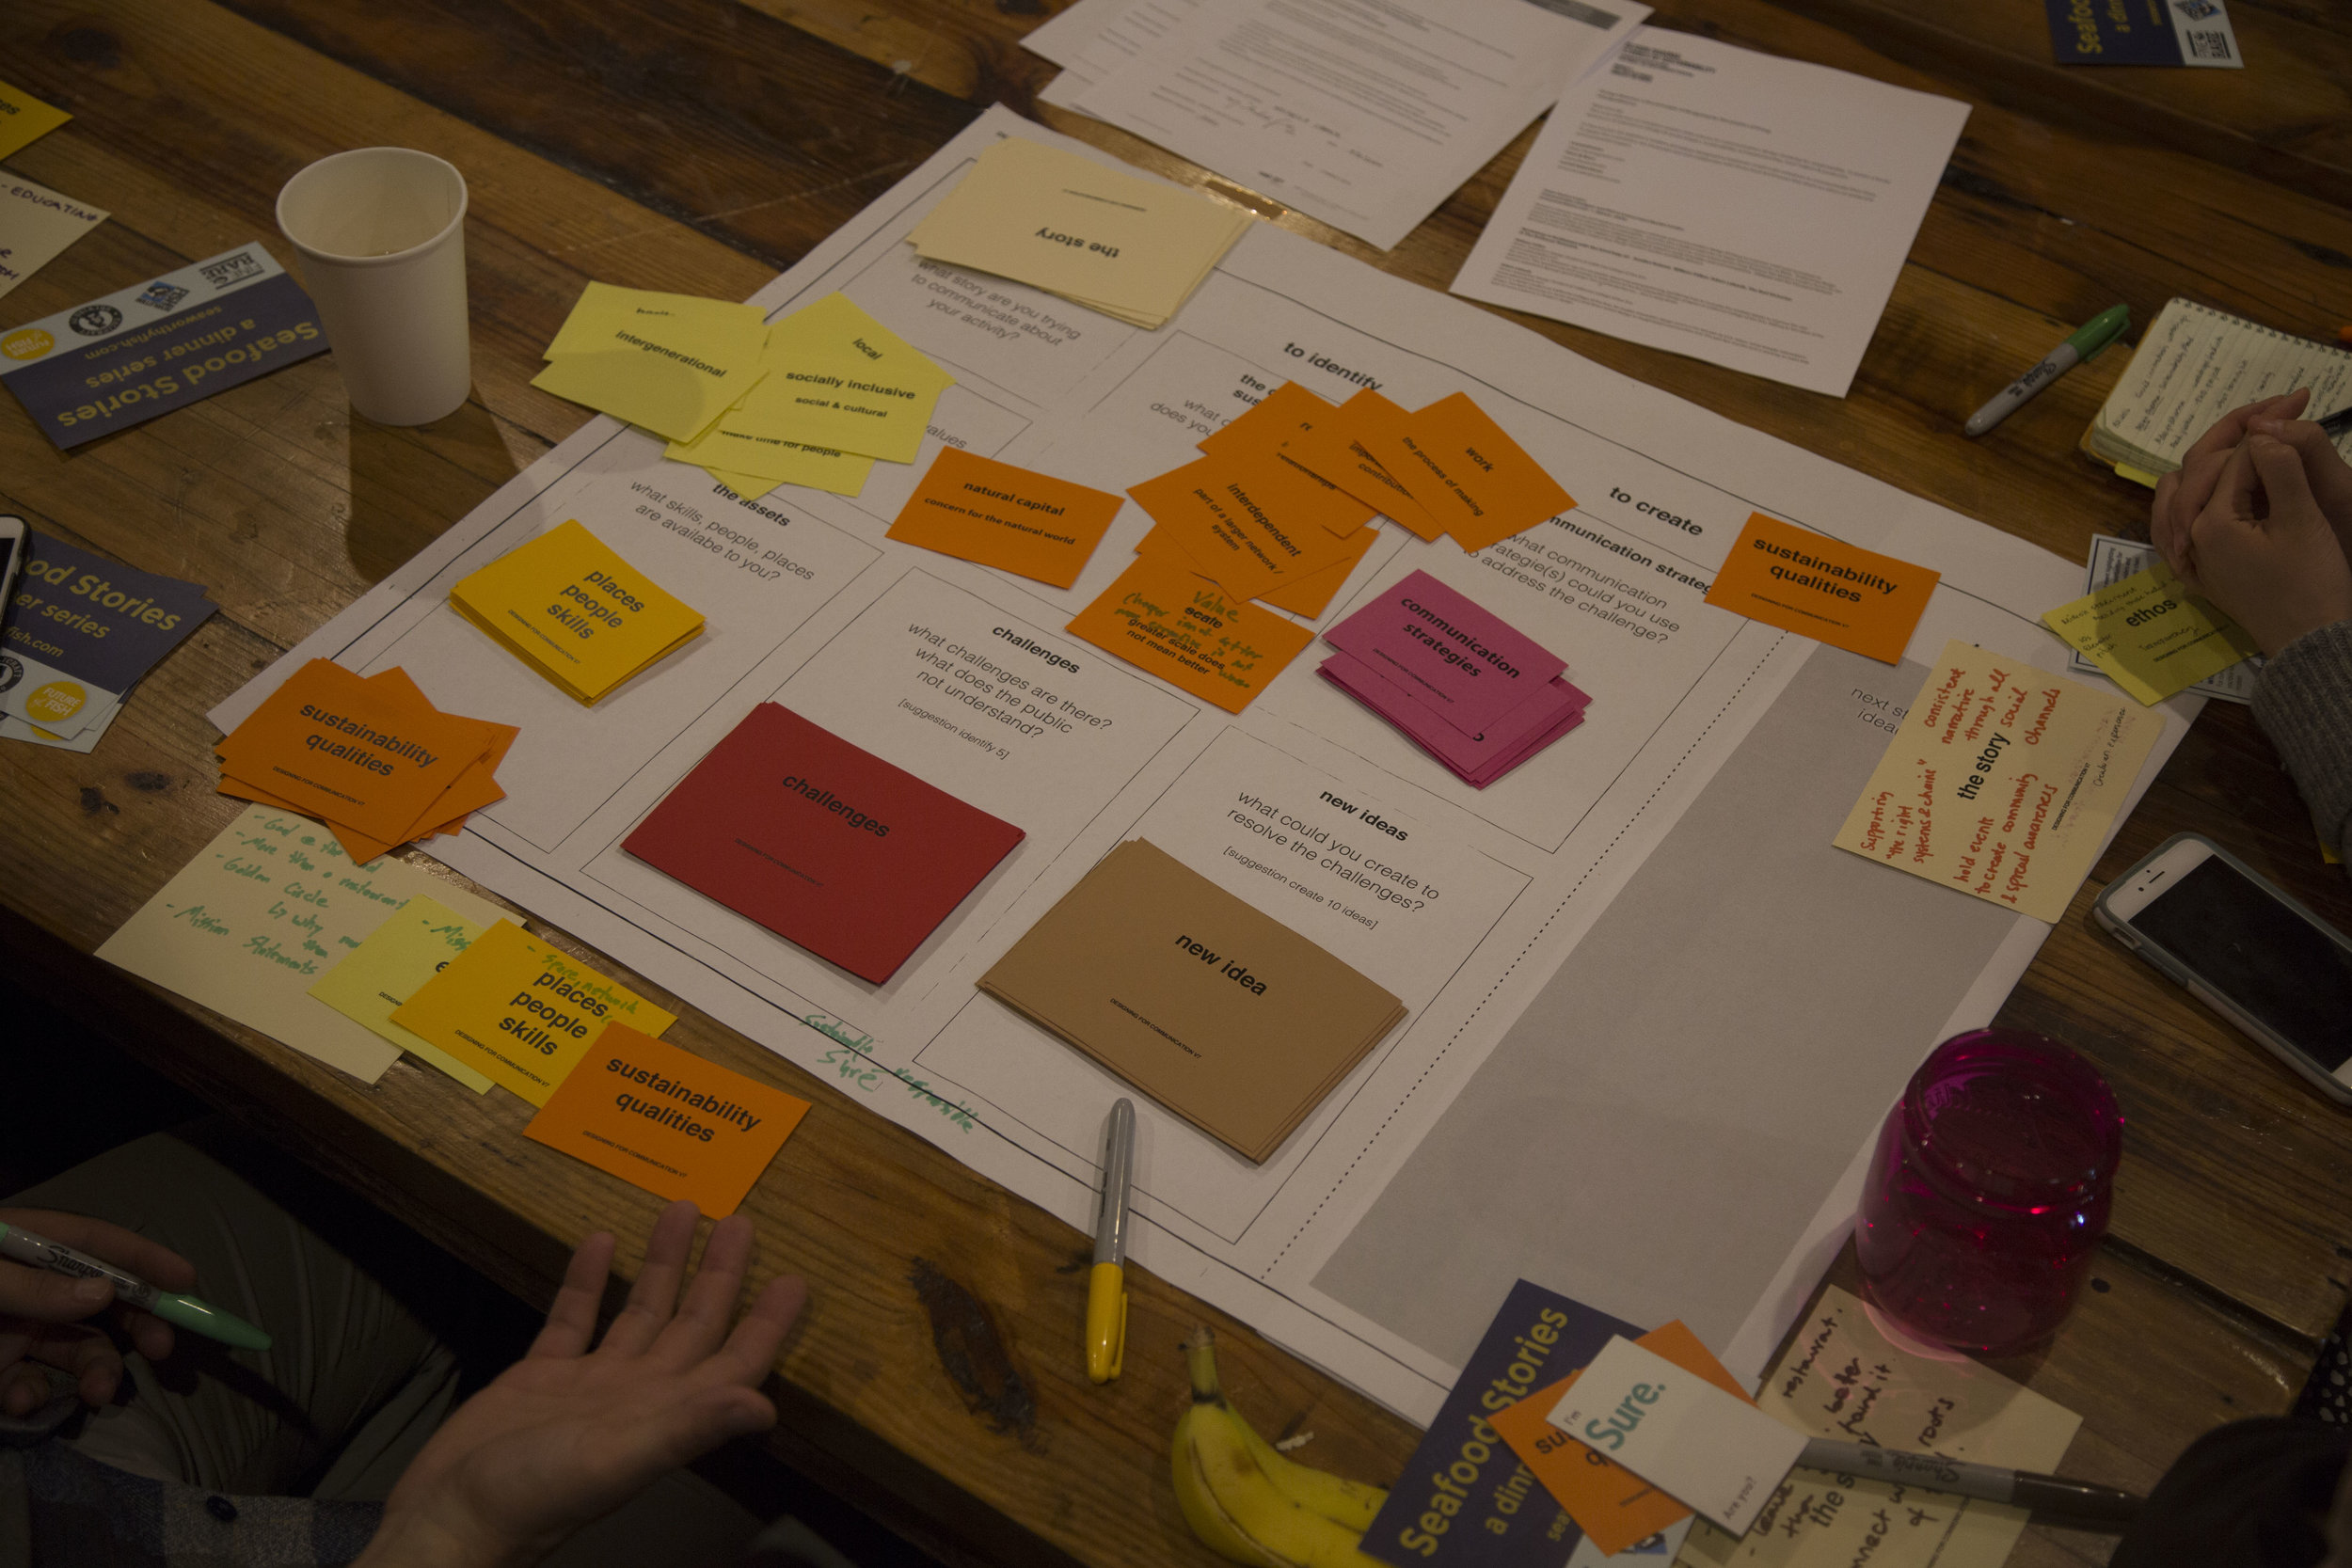 Qualities, method. - A new design method created to support businesses with communication strategy and their qualities of sustainability.If you seek to develop your impact story this method is your guidance.△ apply a design thinking lens to develop your own communications strategy.△ affordable workshops for start-ups and social enterprises.